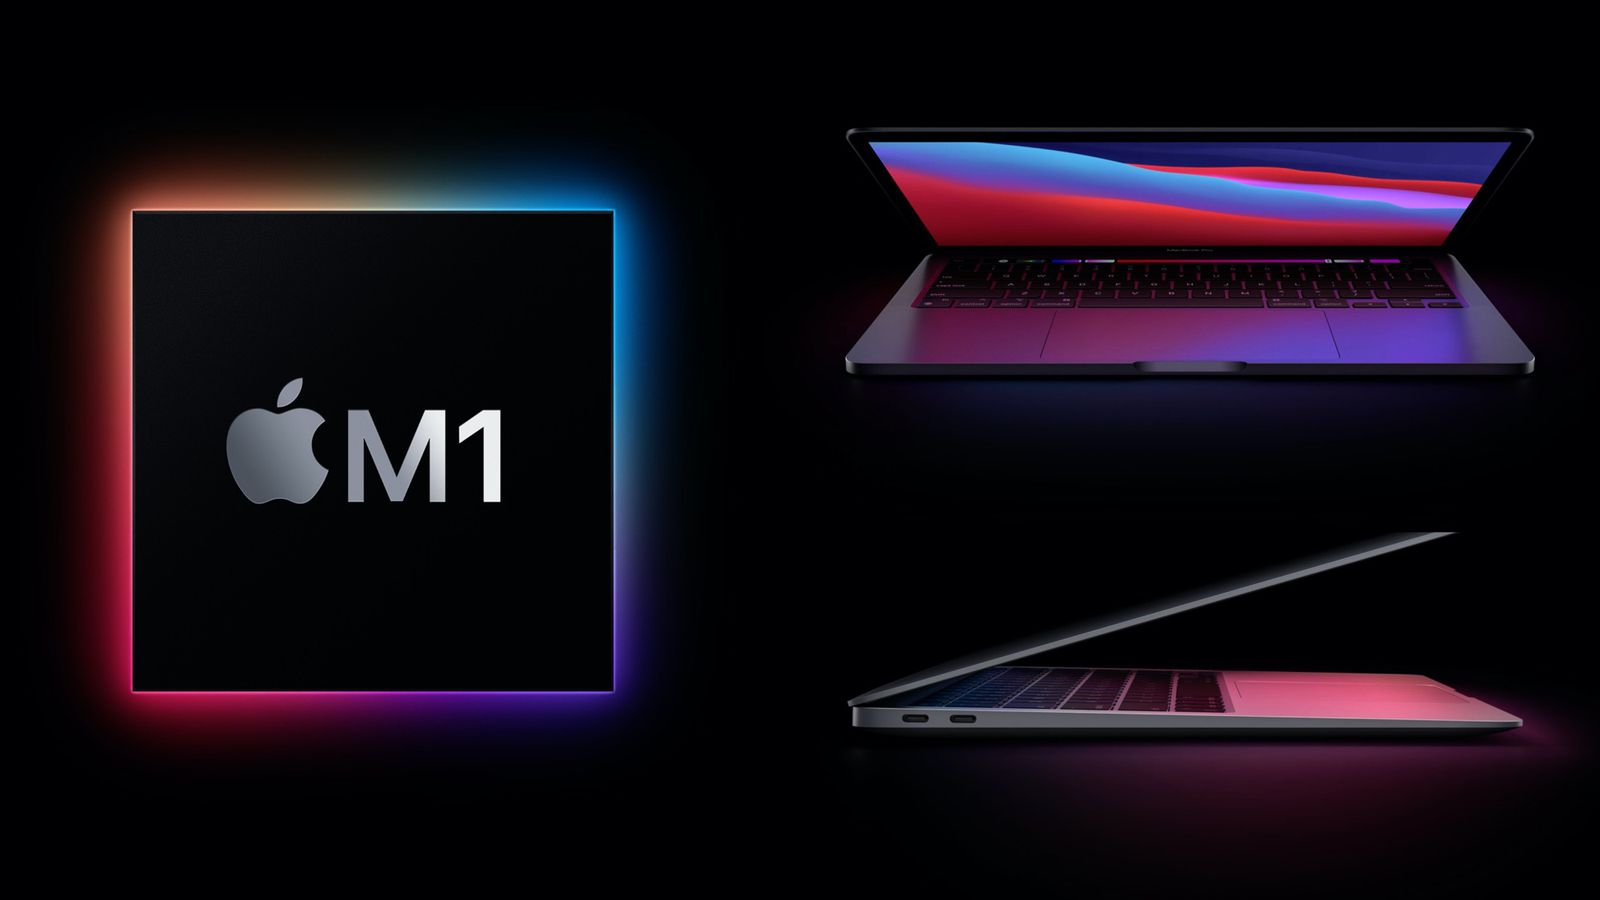 The Latest MacBook with M1 Chip Is Extremely Advanced: Why You Should Rent It Now